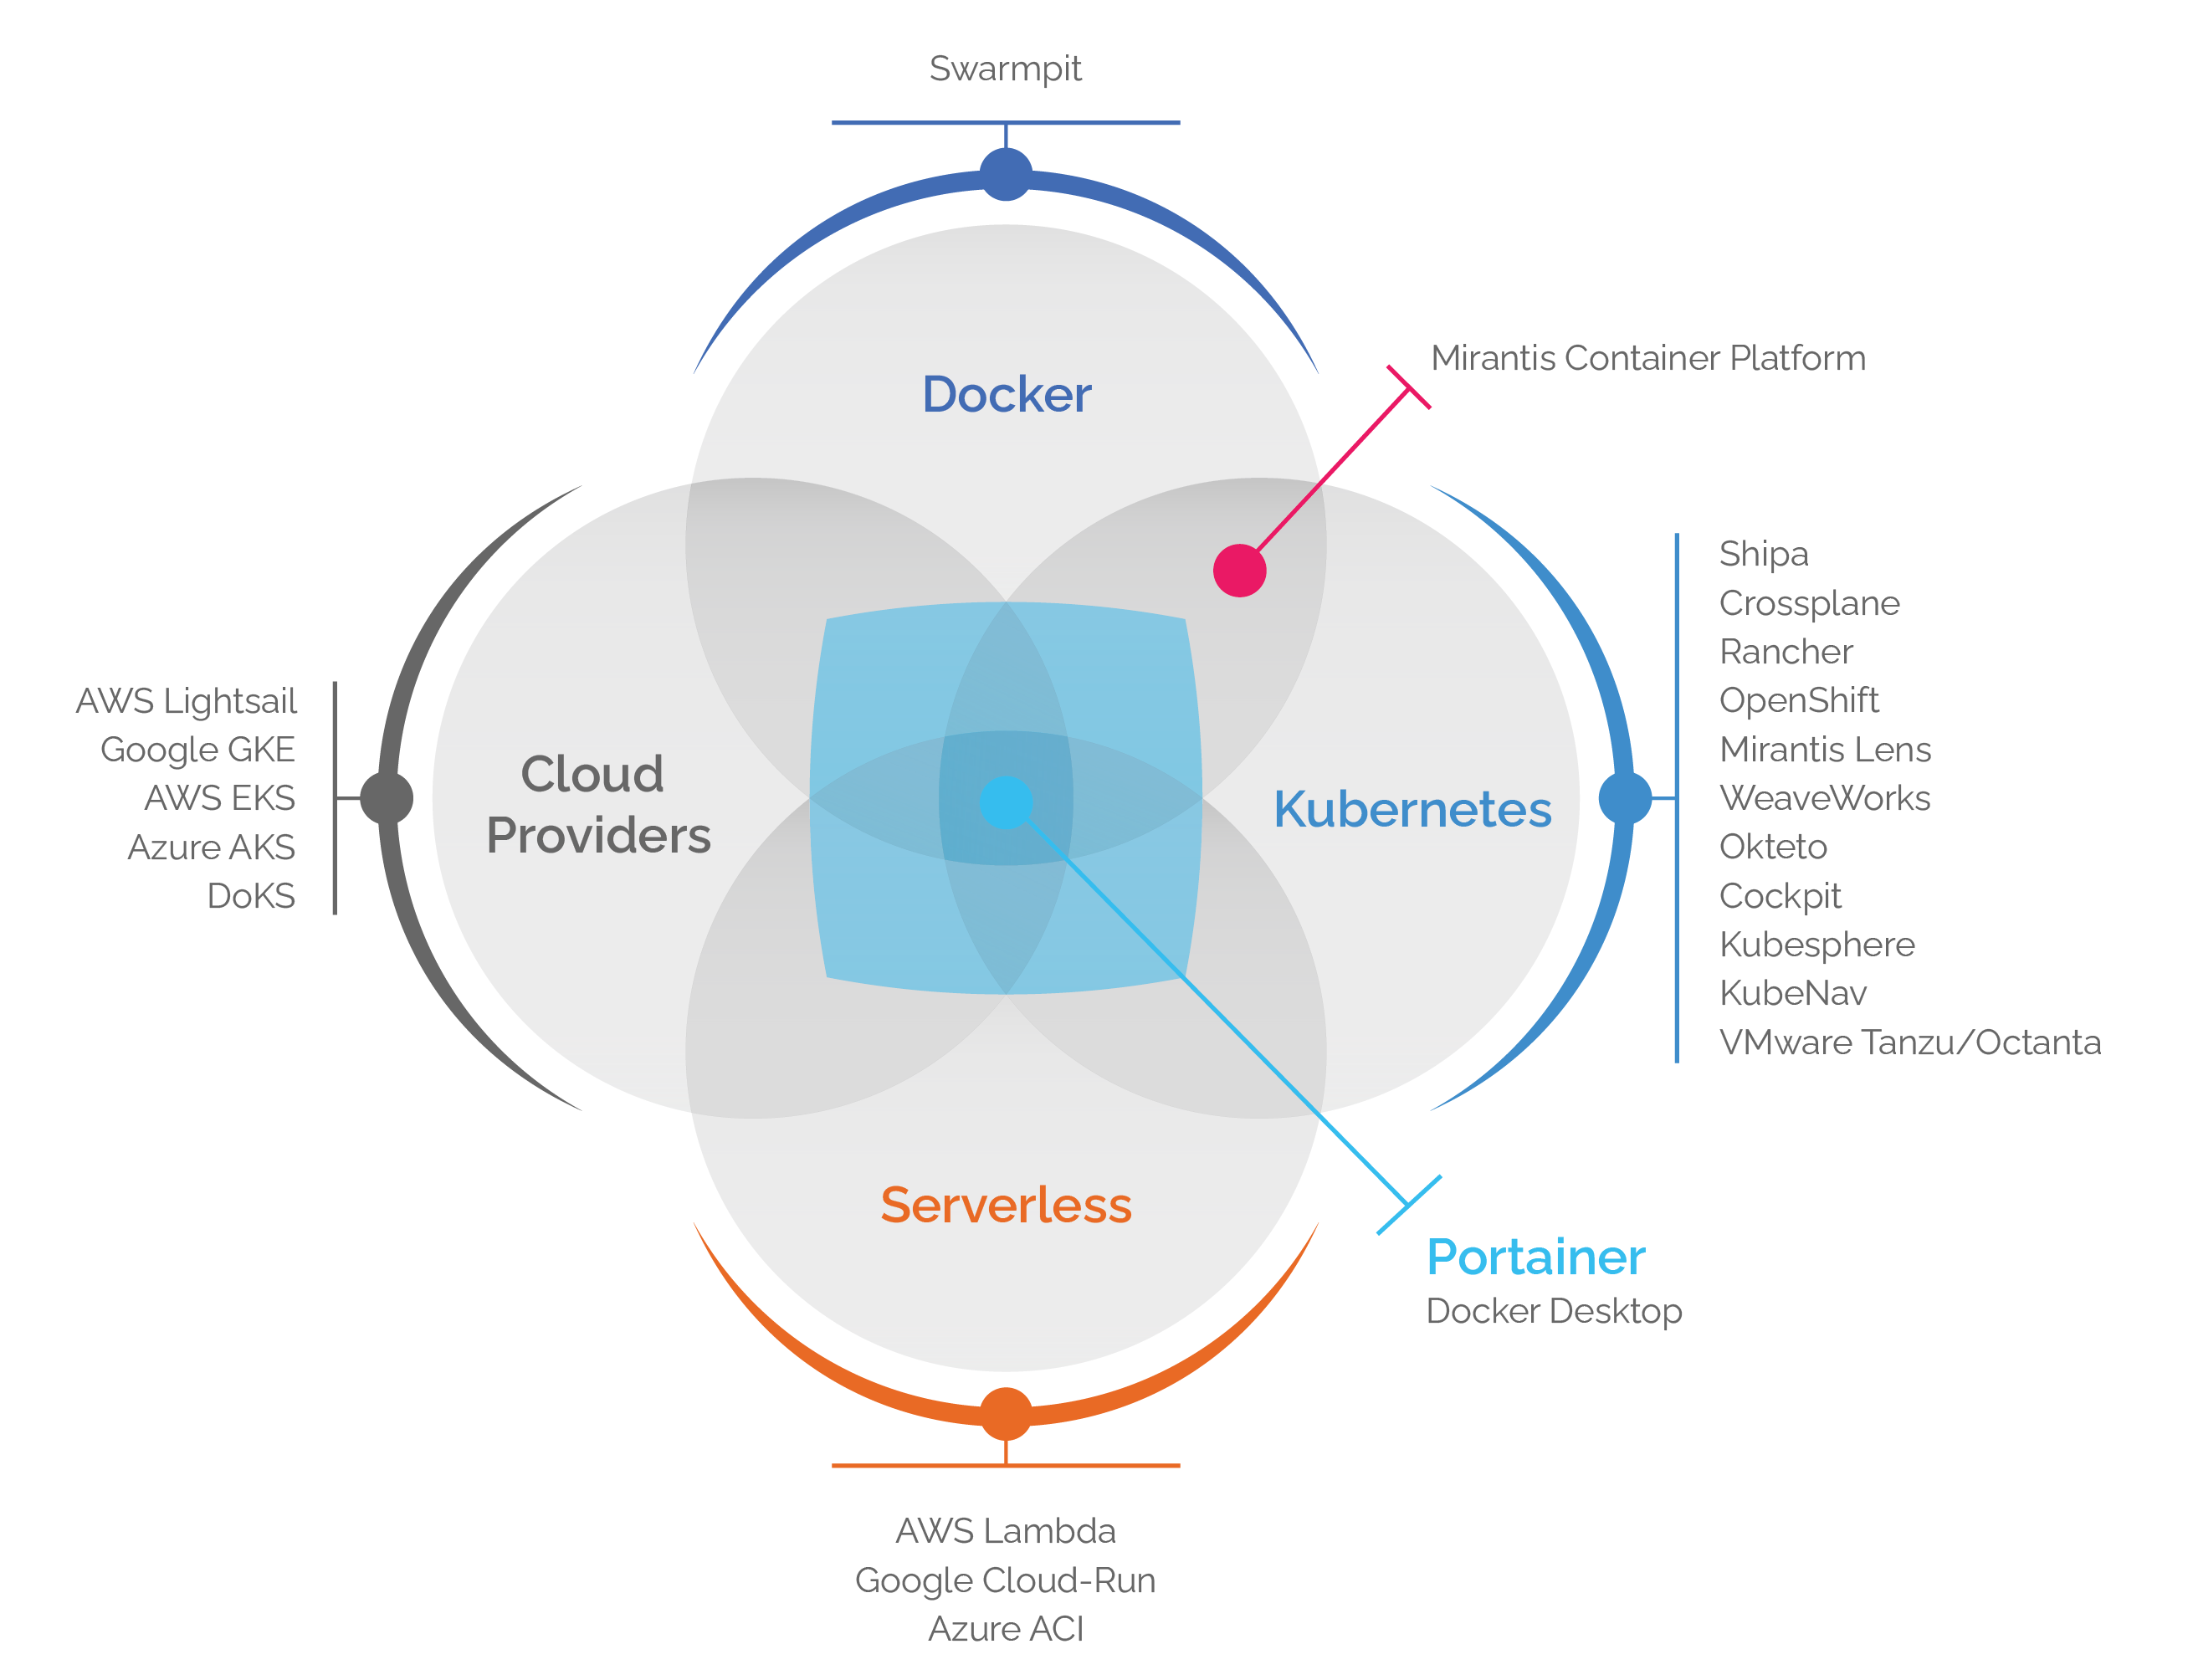 Beyond Docker - Portainer for Kubernetes, ACI/Serverless and Edge Compute